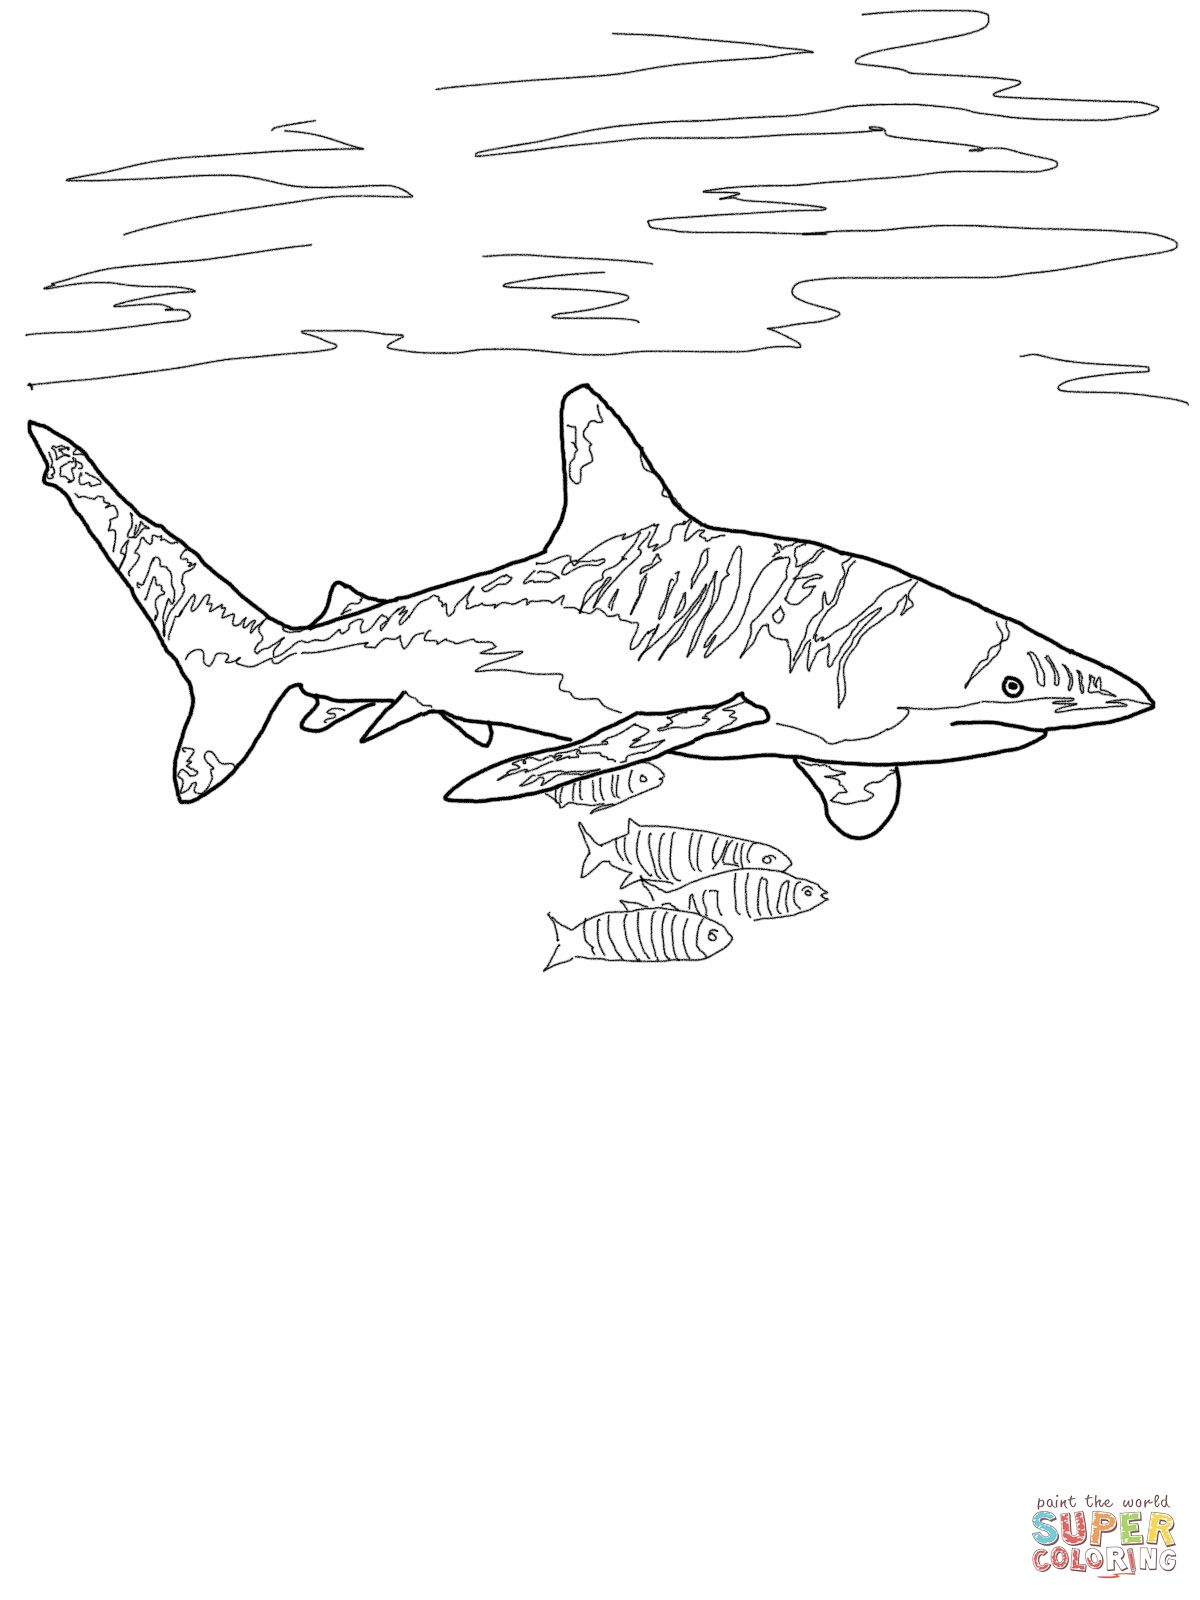 Oceanic Whitetip Shark Super Coloring Shark Drawing Shark